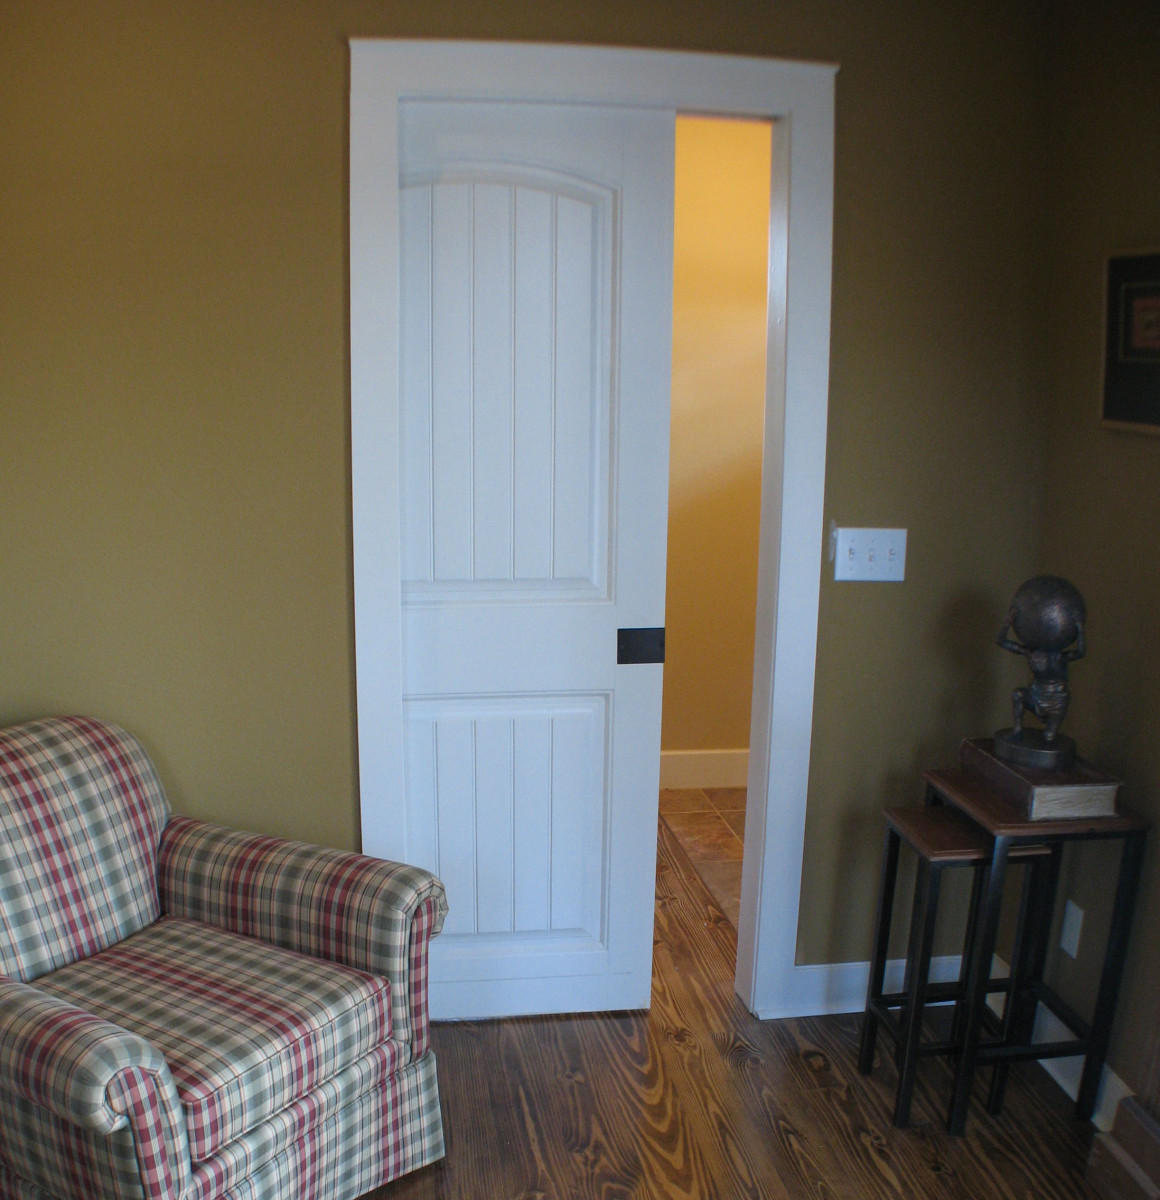 This small study saves space with a pocket door and avoids conflicting with the front door on the other side of the wall.